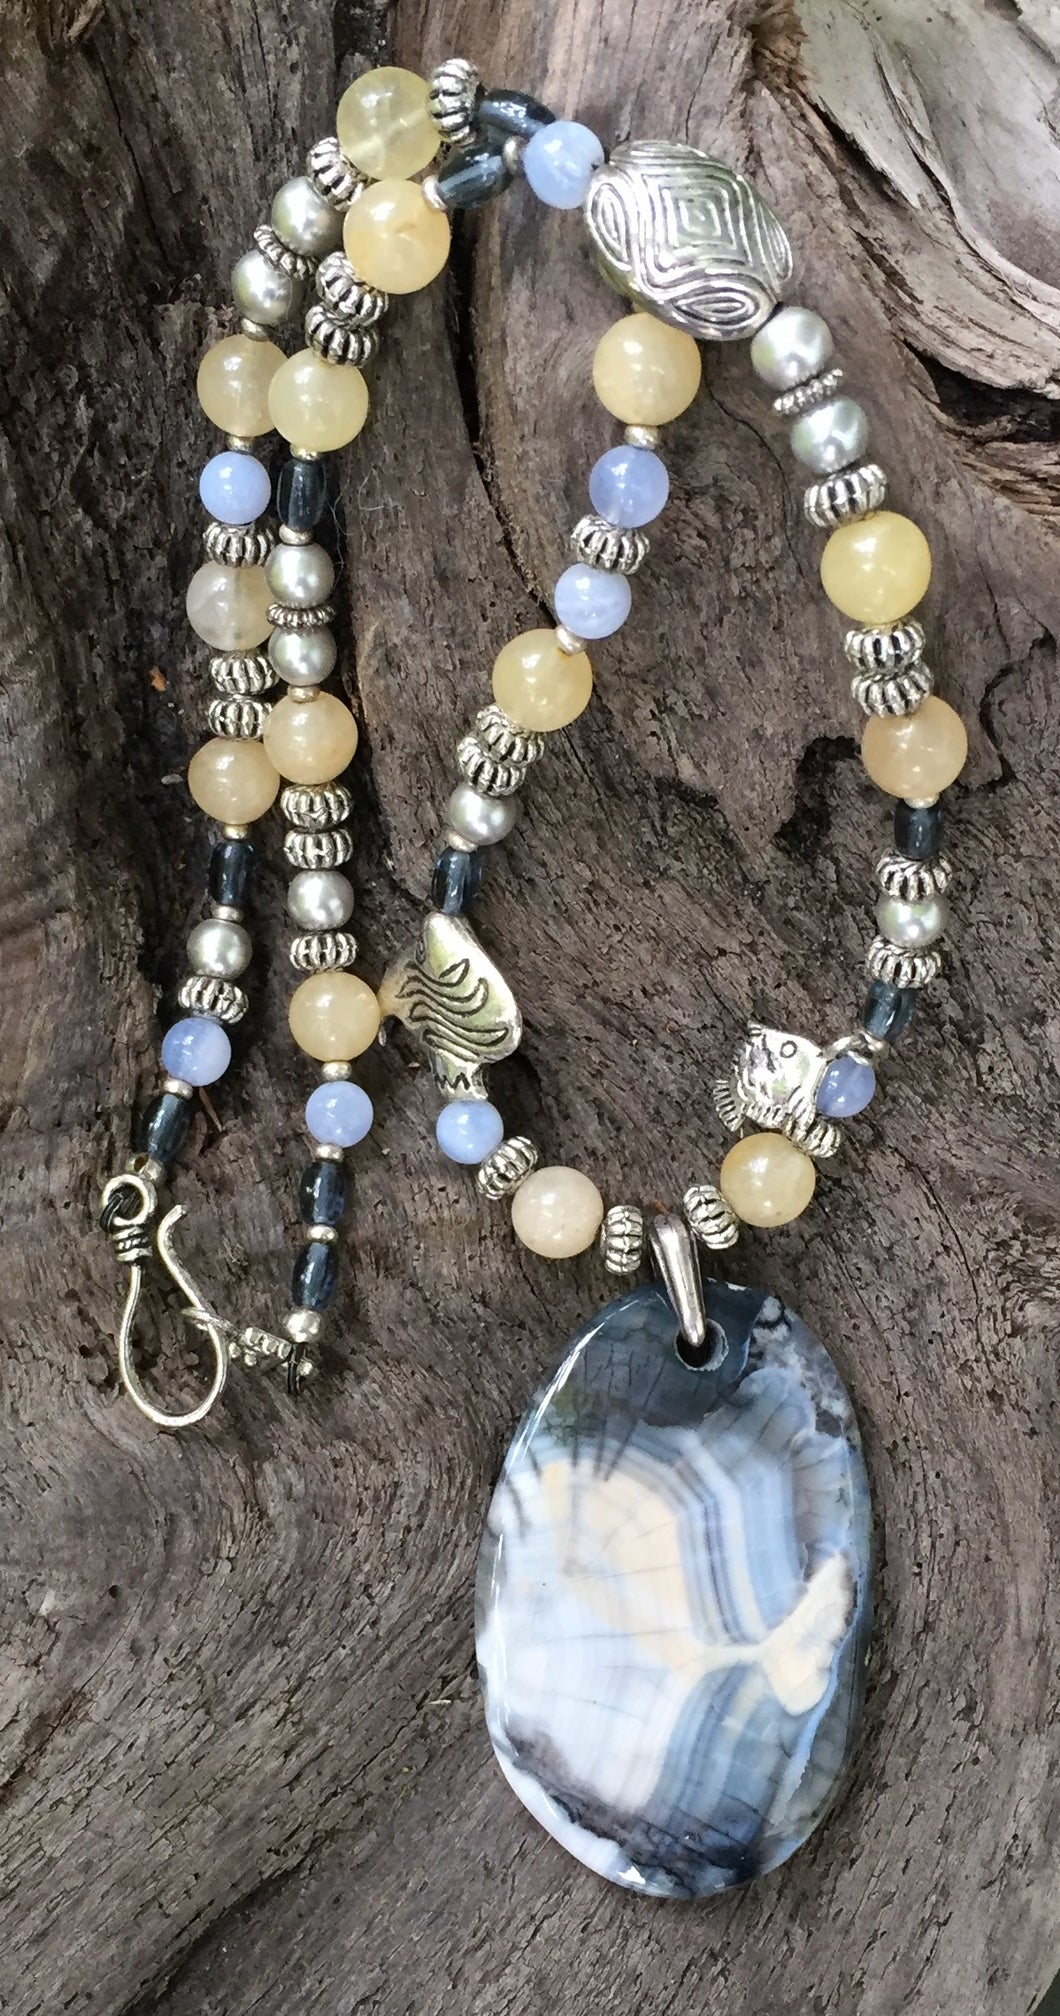 Mineral Necklace - Angelfish Agate with Aragonite and Blue Chalcedony